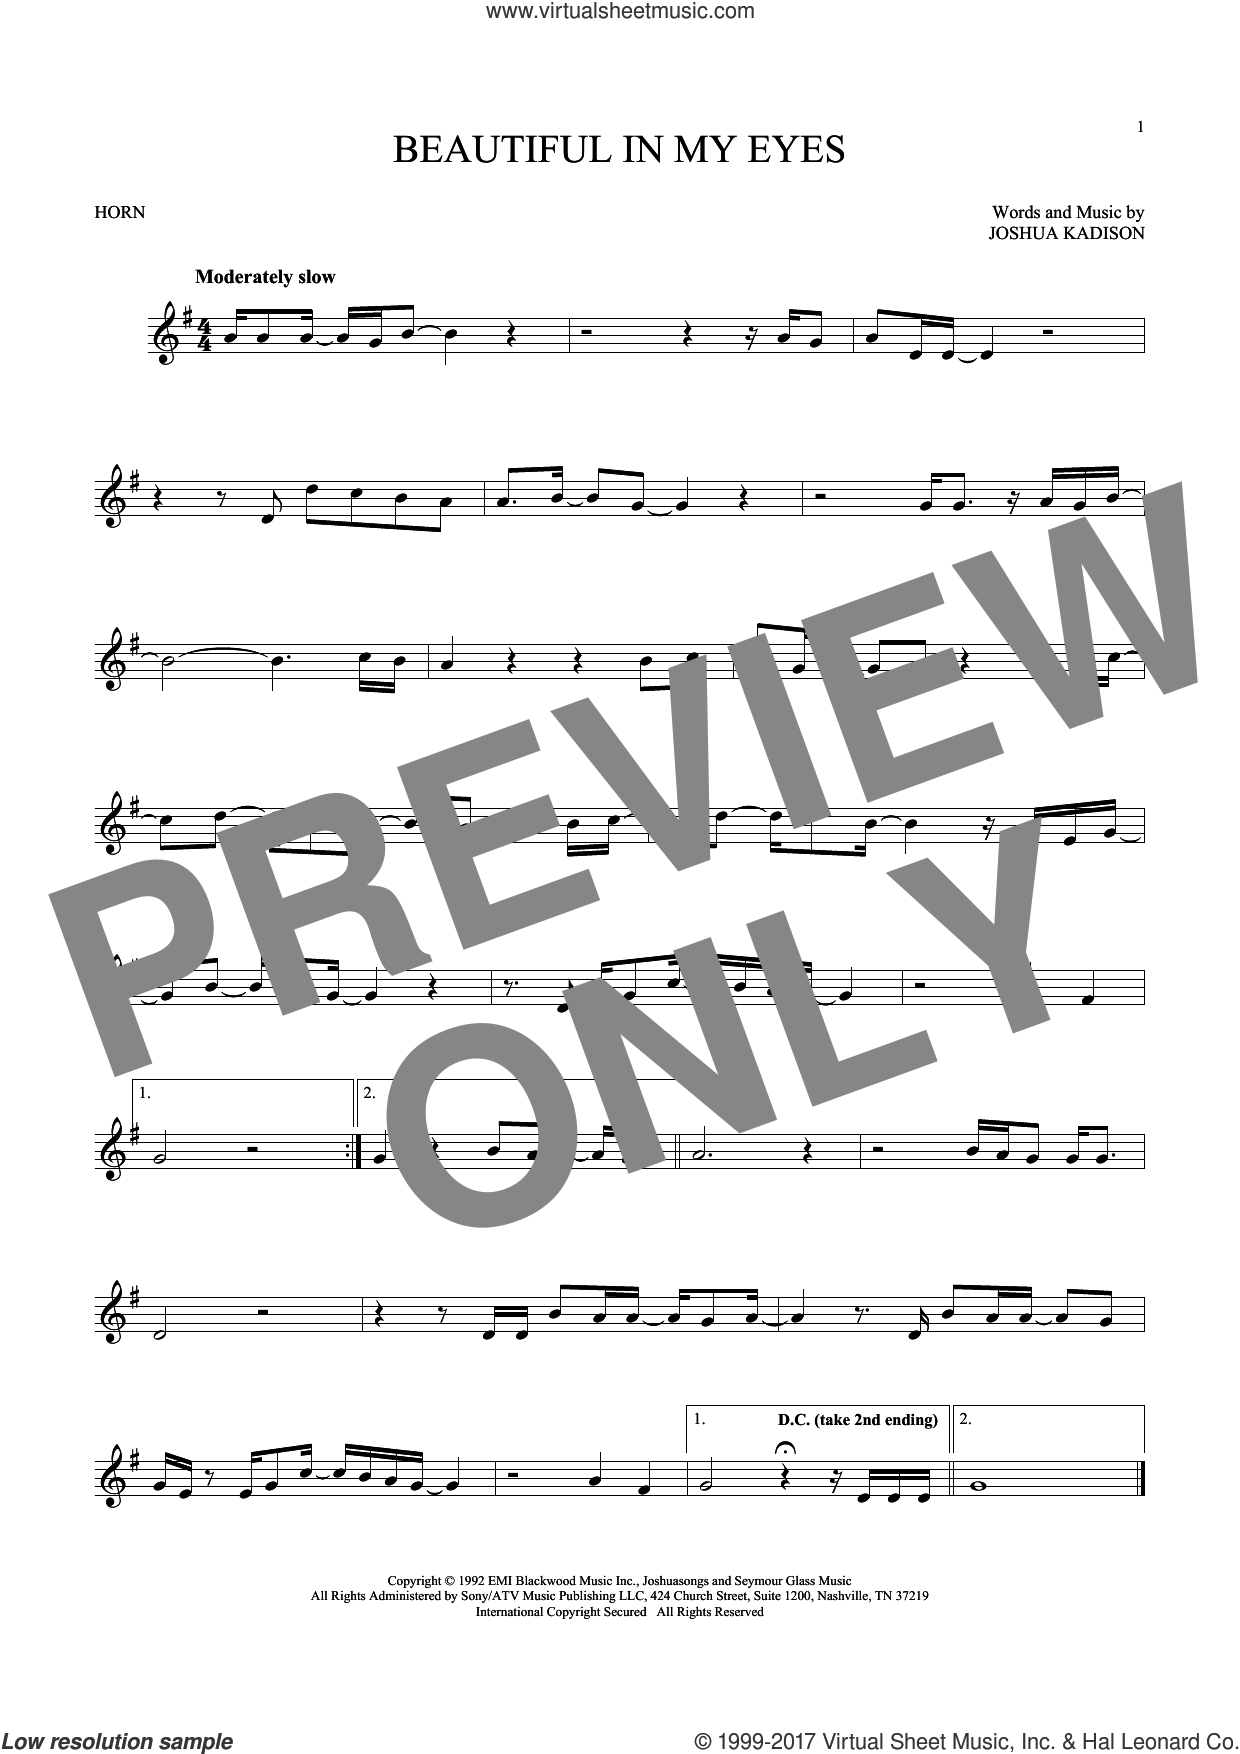 Beautiful In My Eyes sheet music for horn solo by Joshua Kadison, intermediate skill level